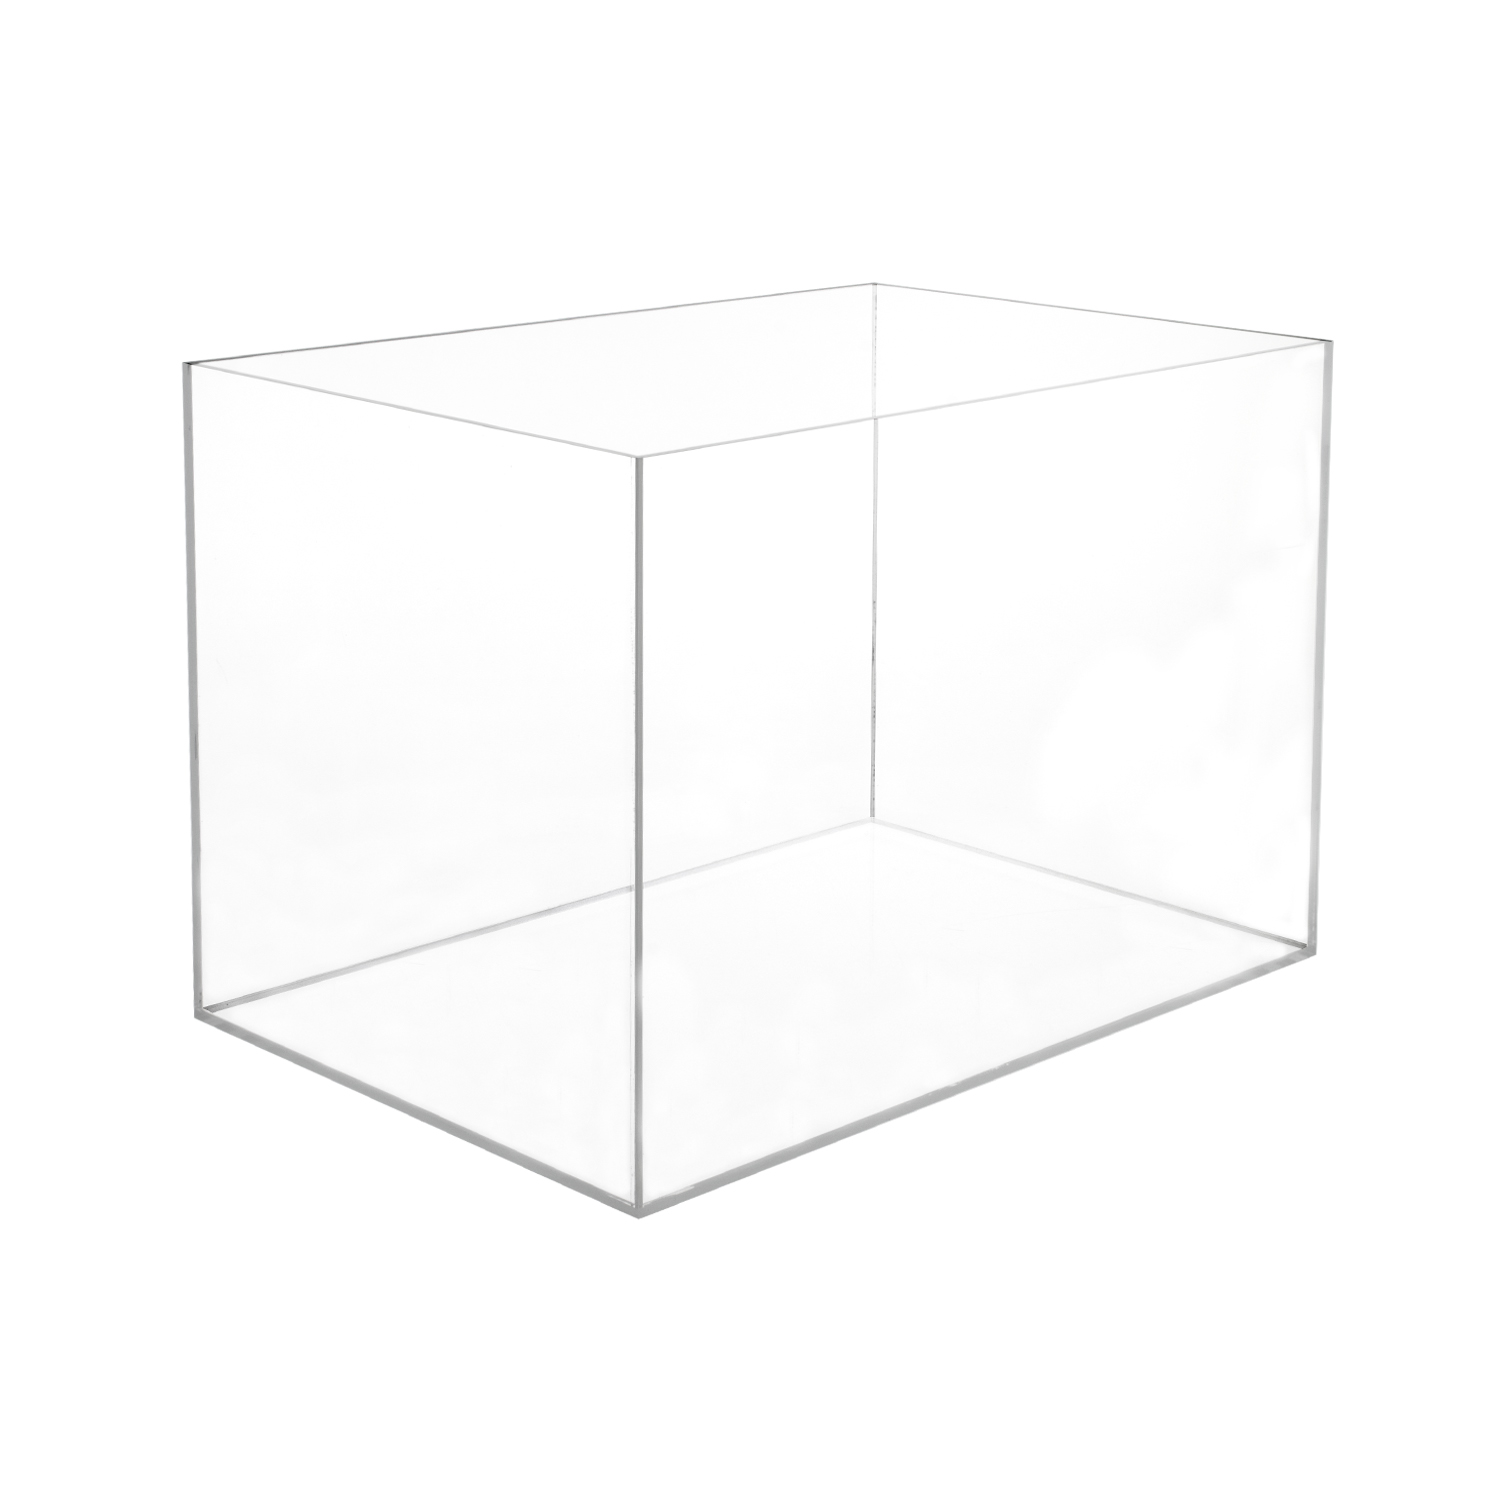 Acrylic 5 Sided Box 12 Quot H X 12 Quot W X 18 Quot L Buy Acrylic